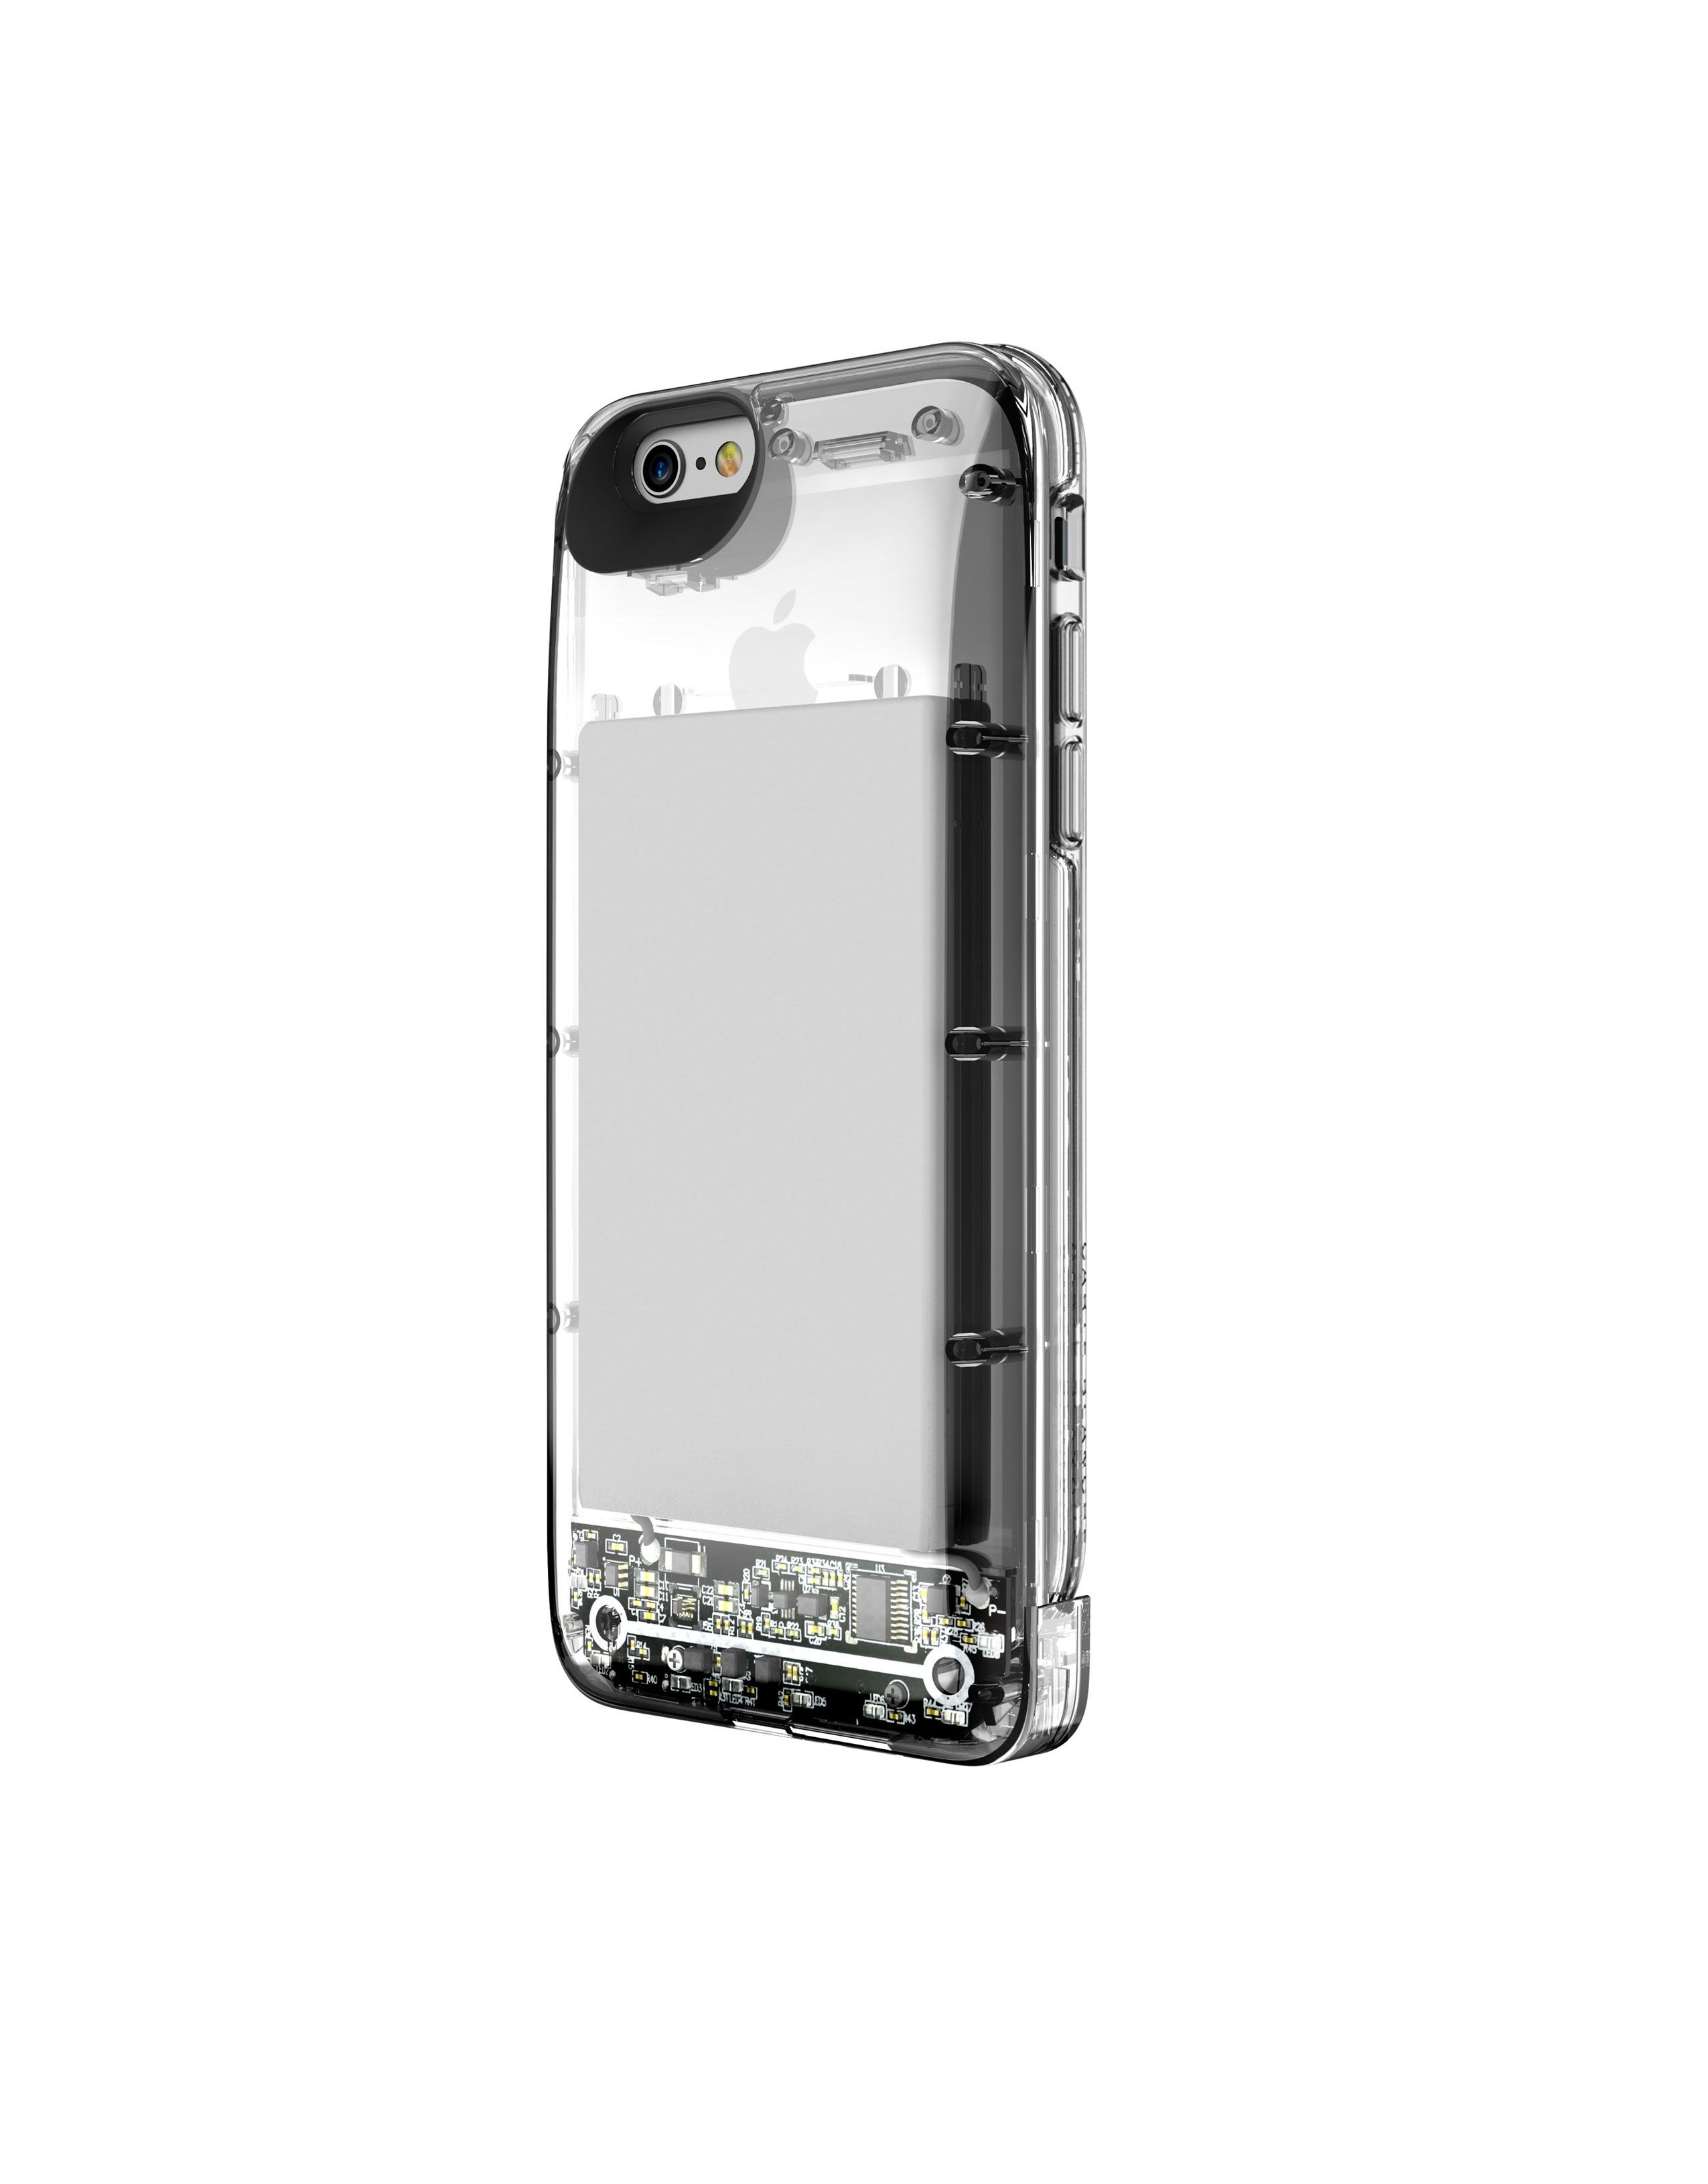 The Boostcase GEMSTONE collection for iPhone 6s & iPhone 6 features a Snap…